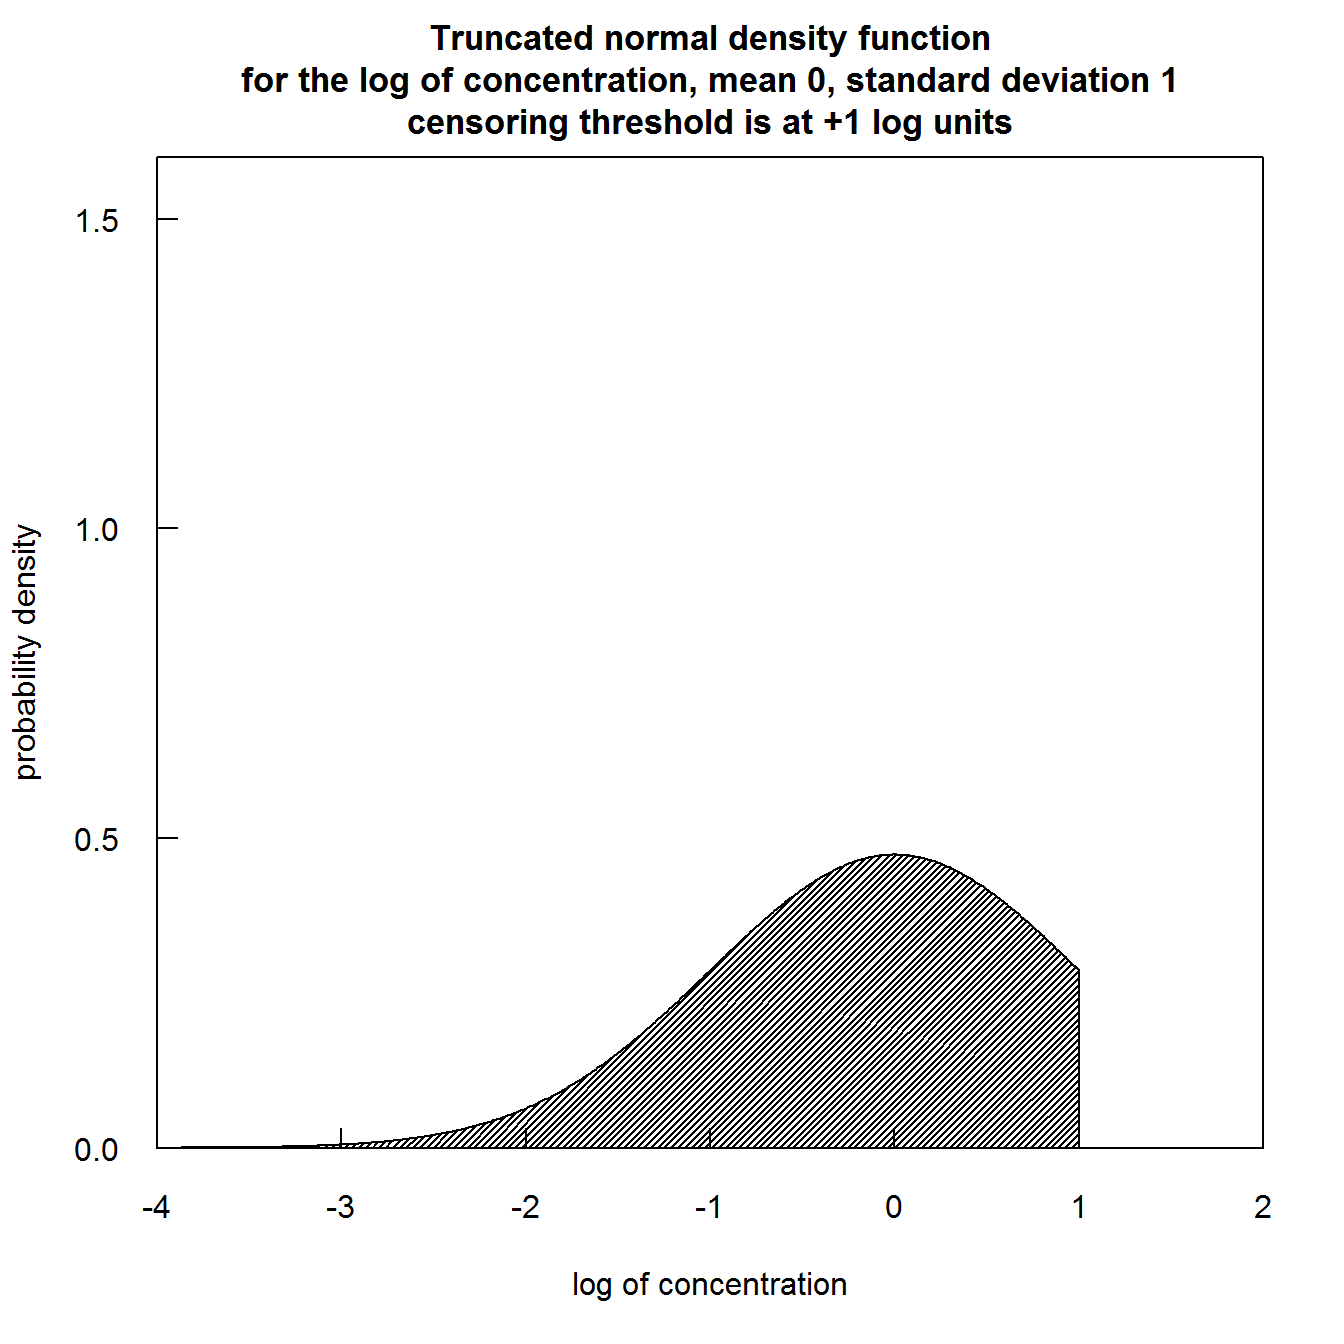 Truncated normal distribution images